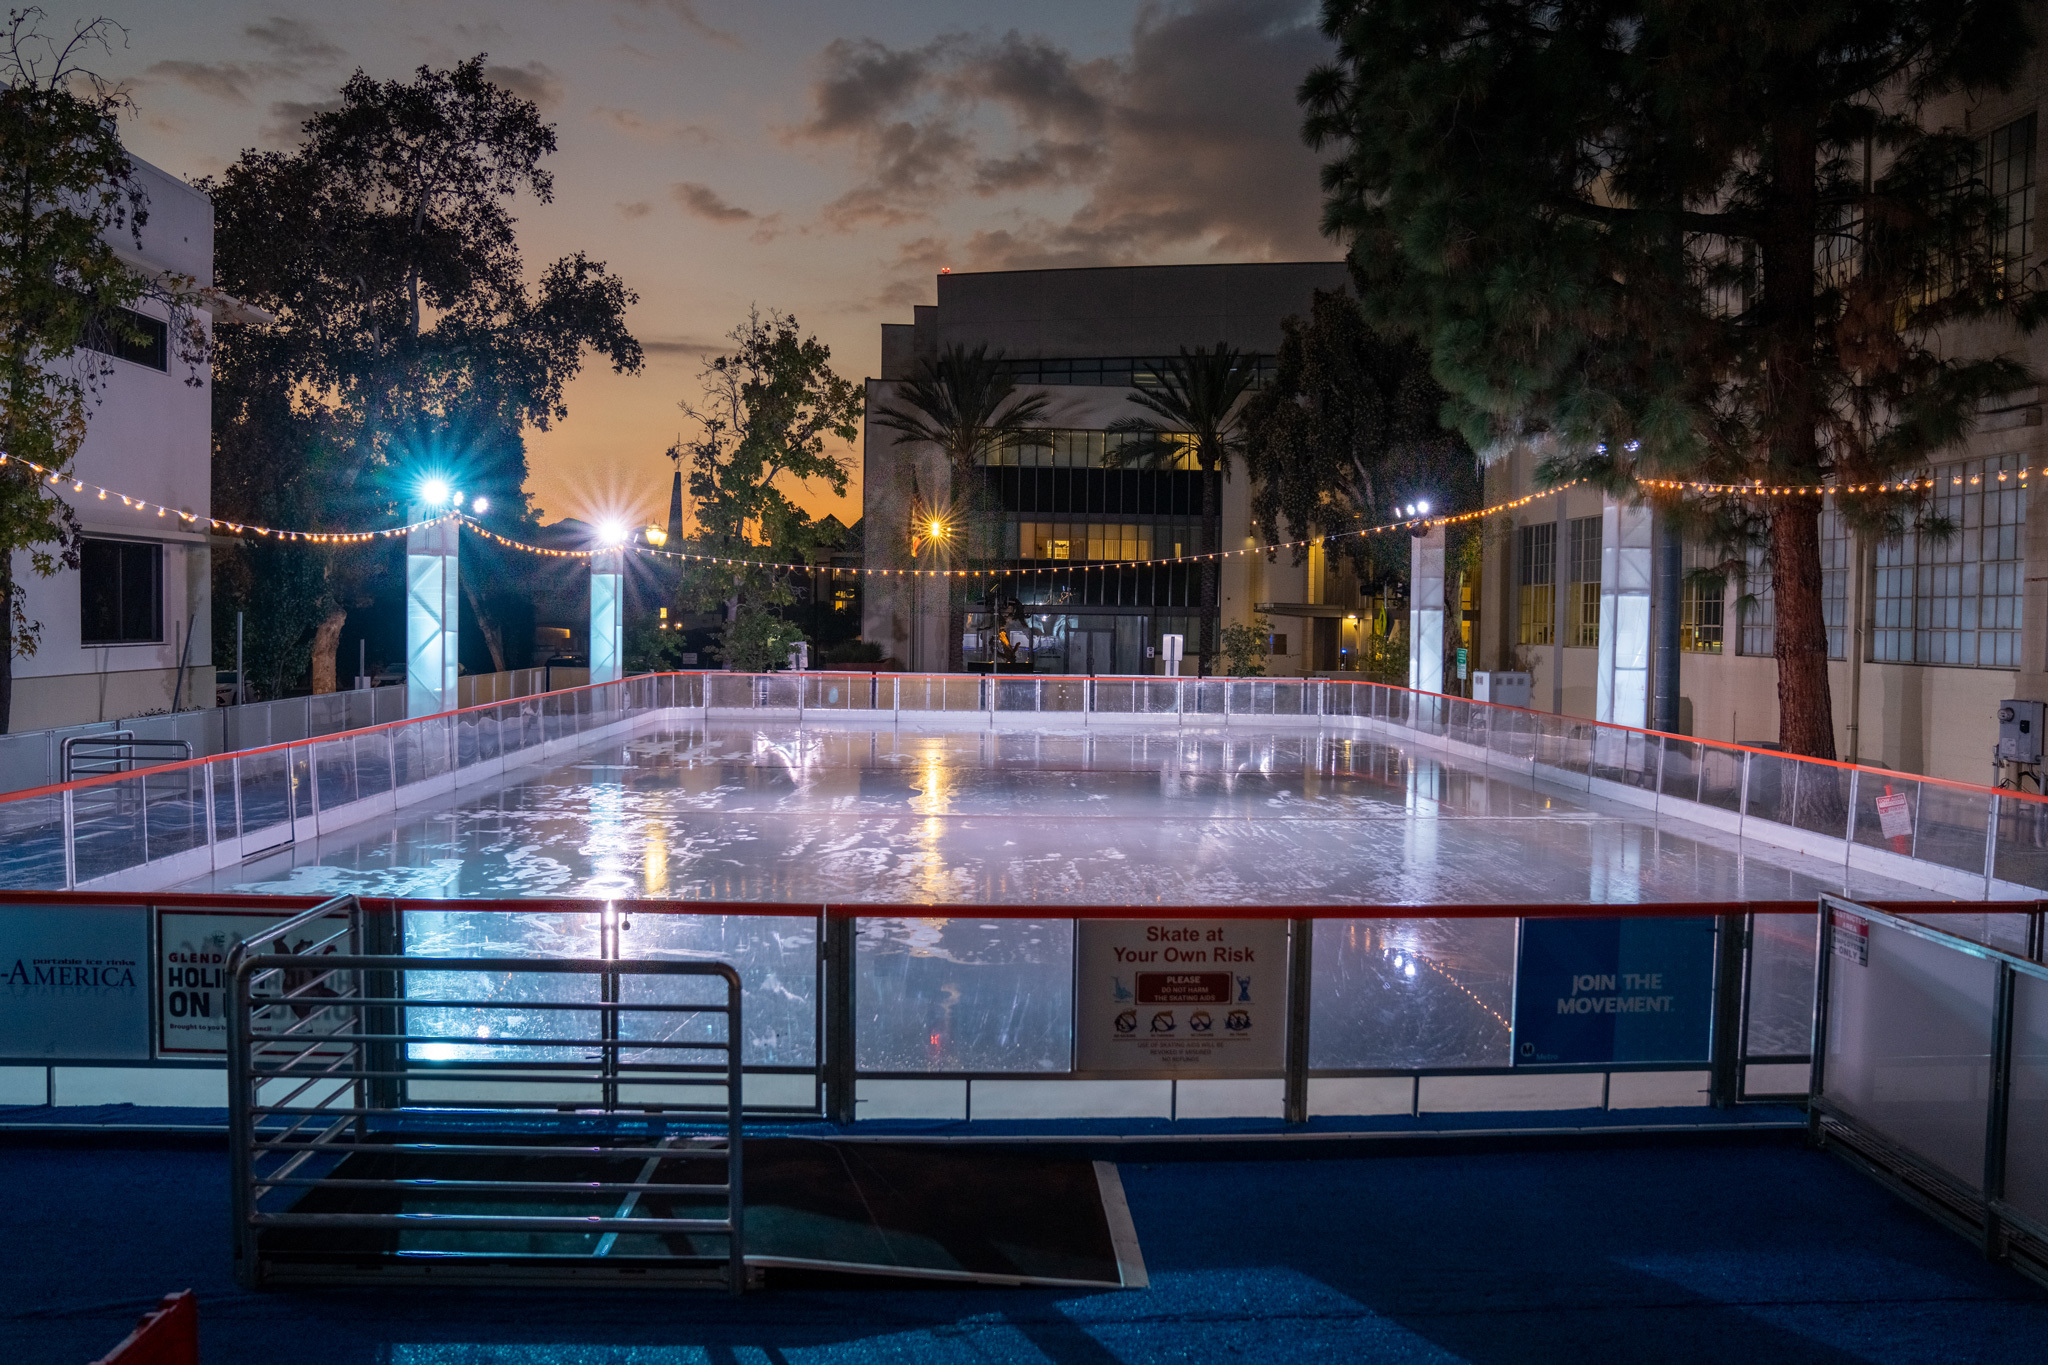 Glendale's Holiday on Ice